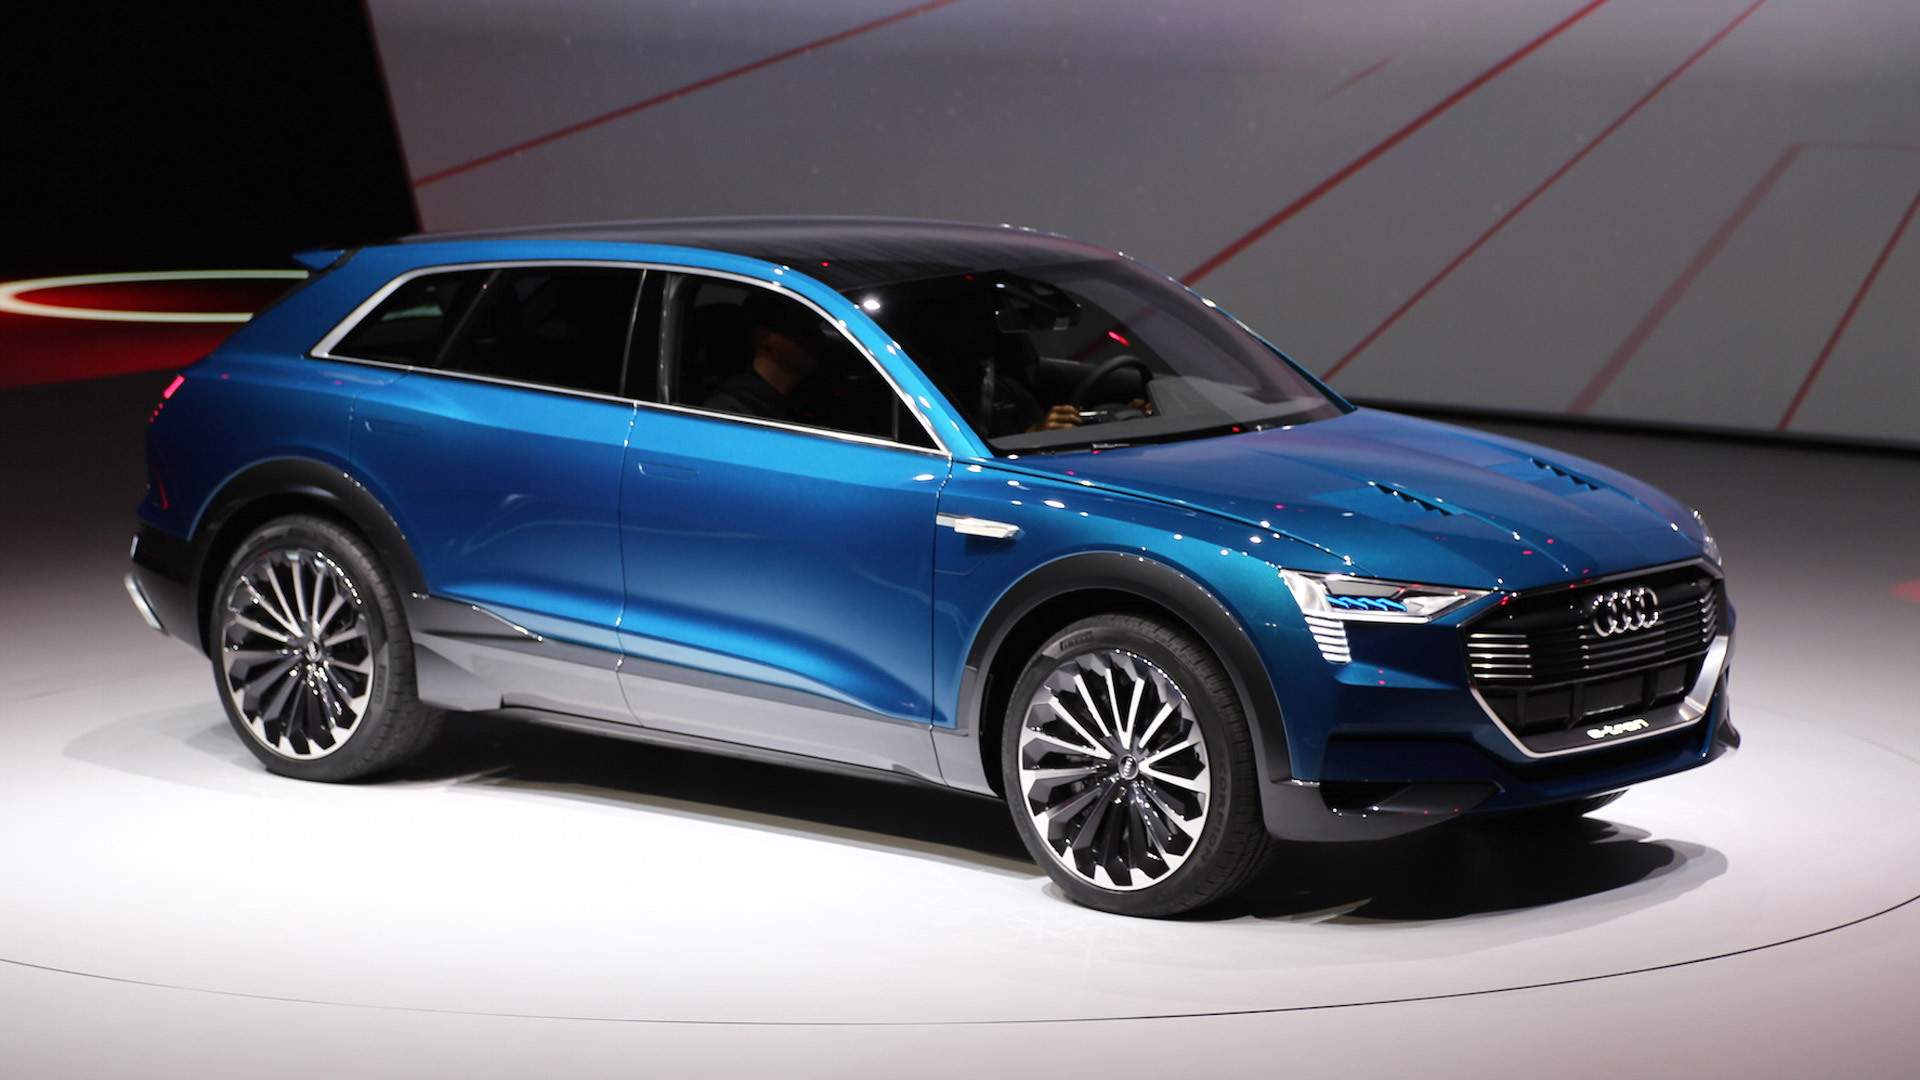 Audi E Tron Quattro Concept 2018 Electric Car Previewed At Frankfurt Motor Show